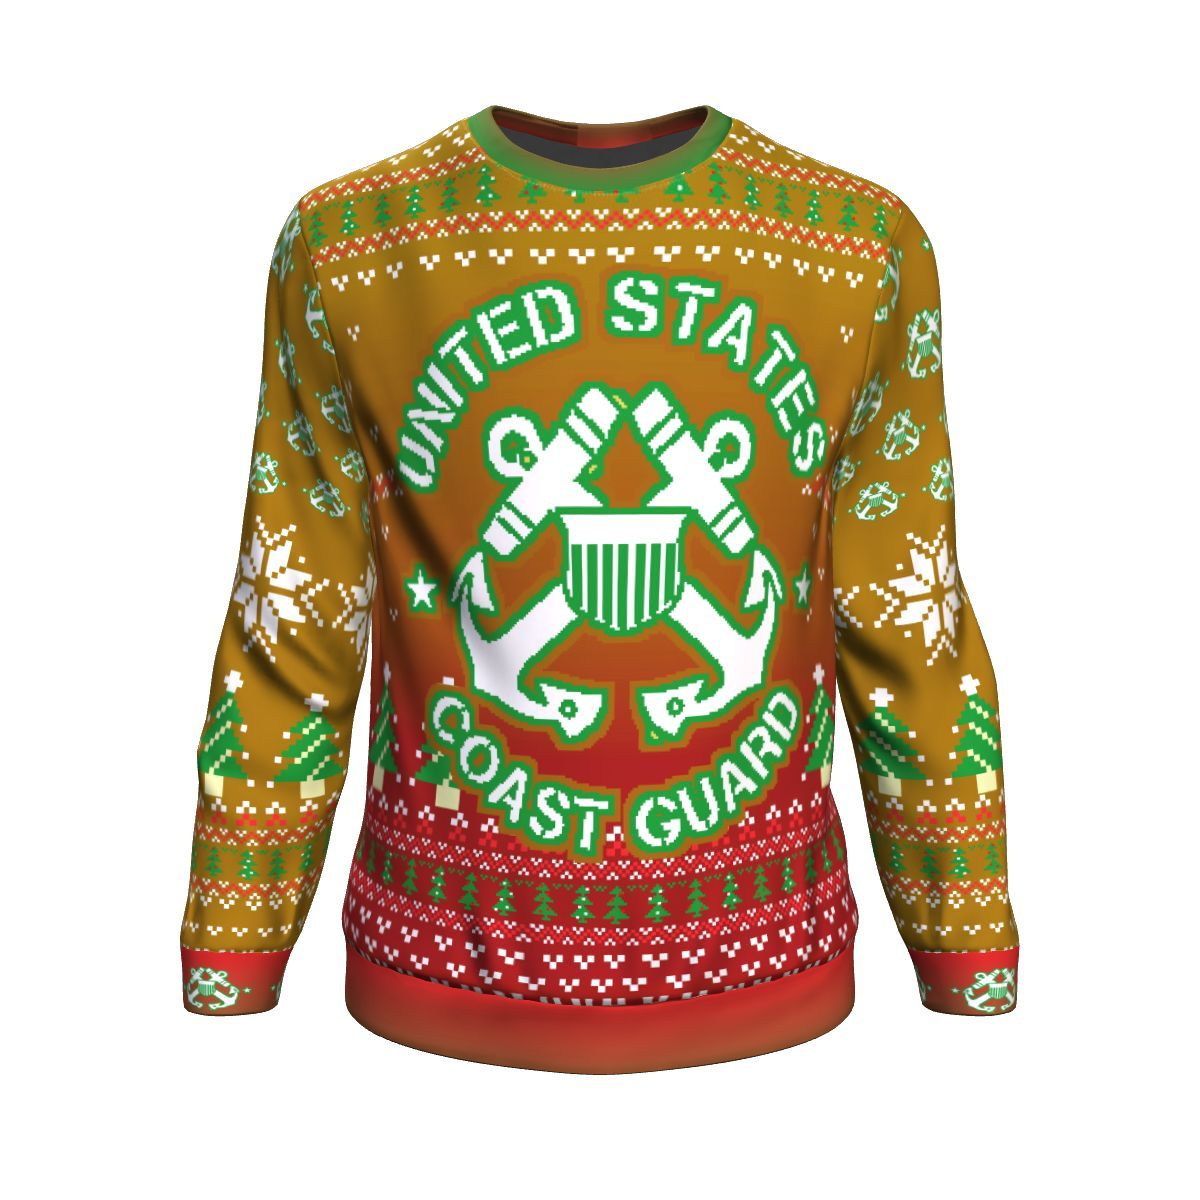 united states coast guard bright all over printed ugly christmas sweater 3